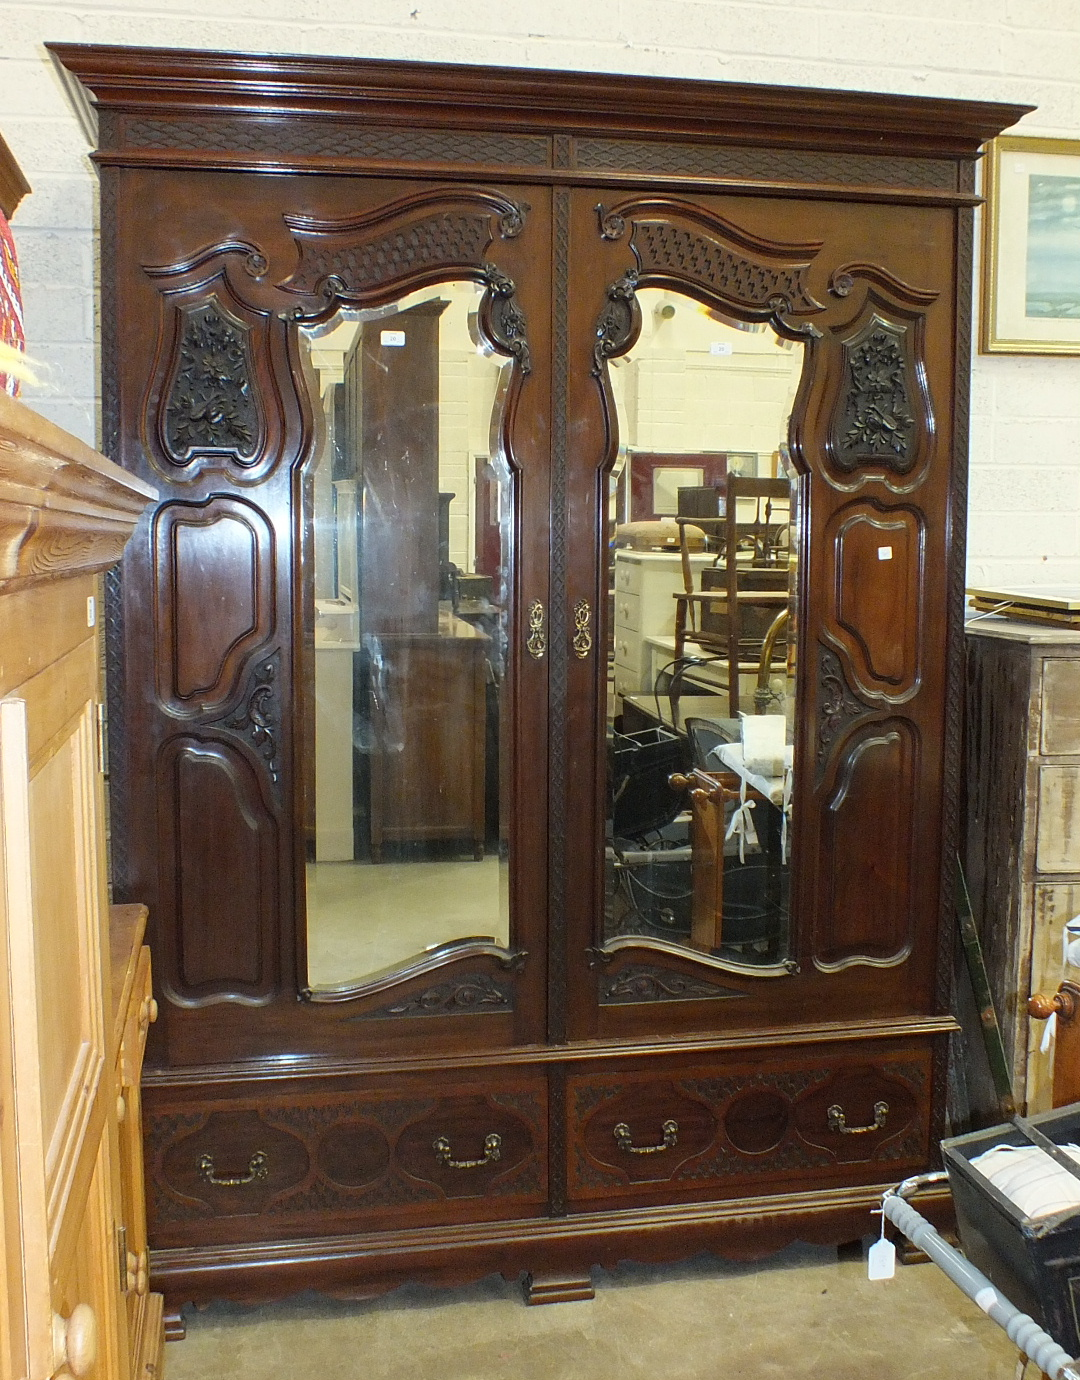 Lot 20 - An Edwardian mahogany carved wardrobe, the cornice above a pair of mirrored doors, on two-drawer